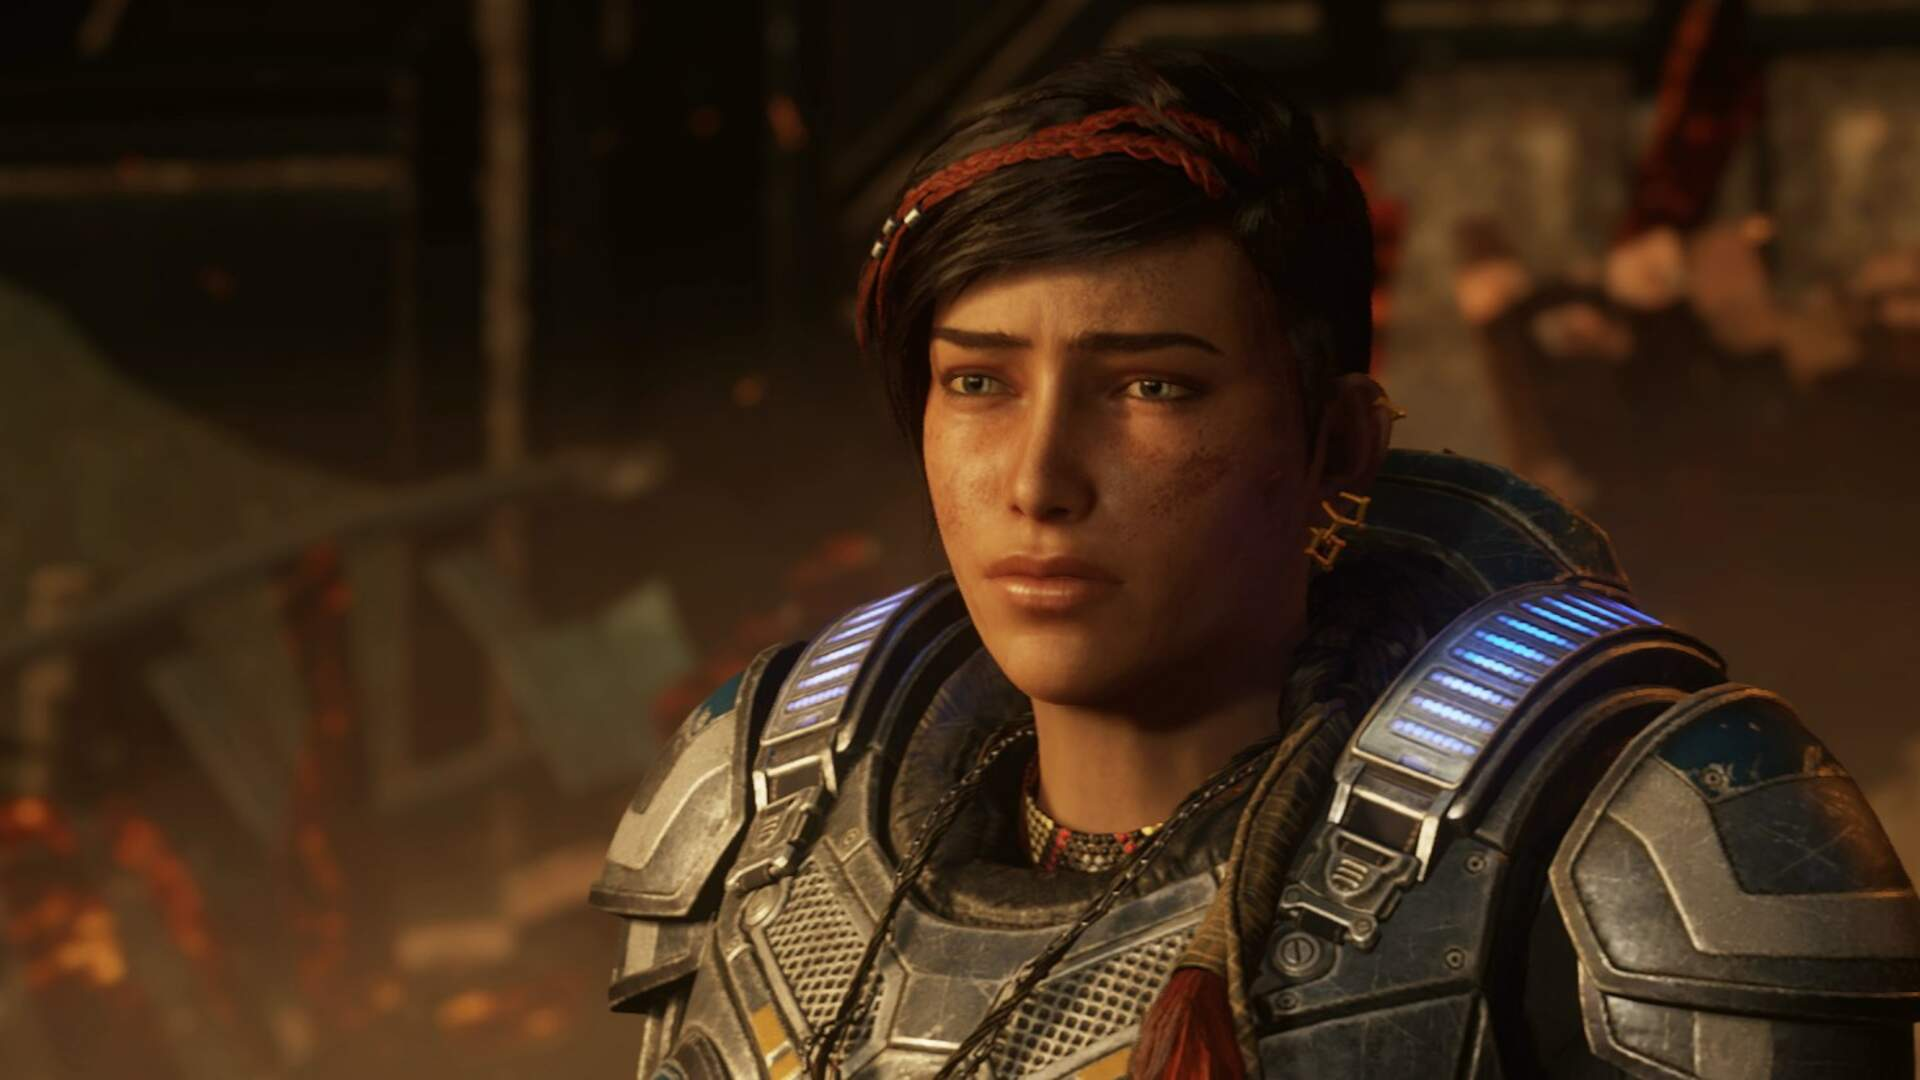 Gears 5 Characters Guide Who Are The Characters In Gears 5